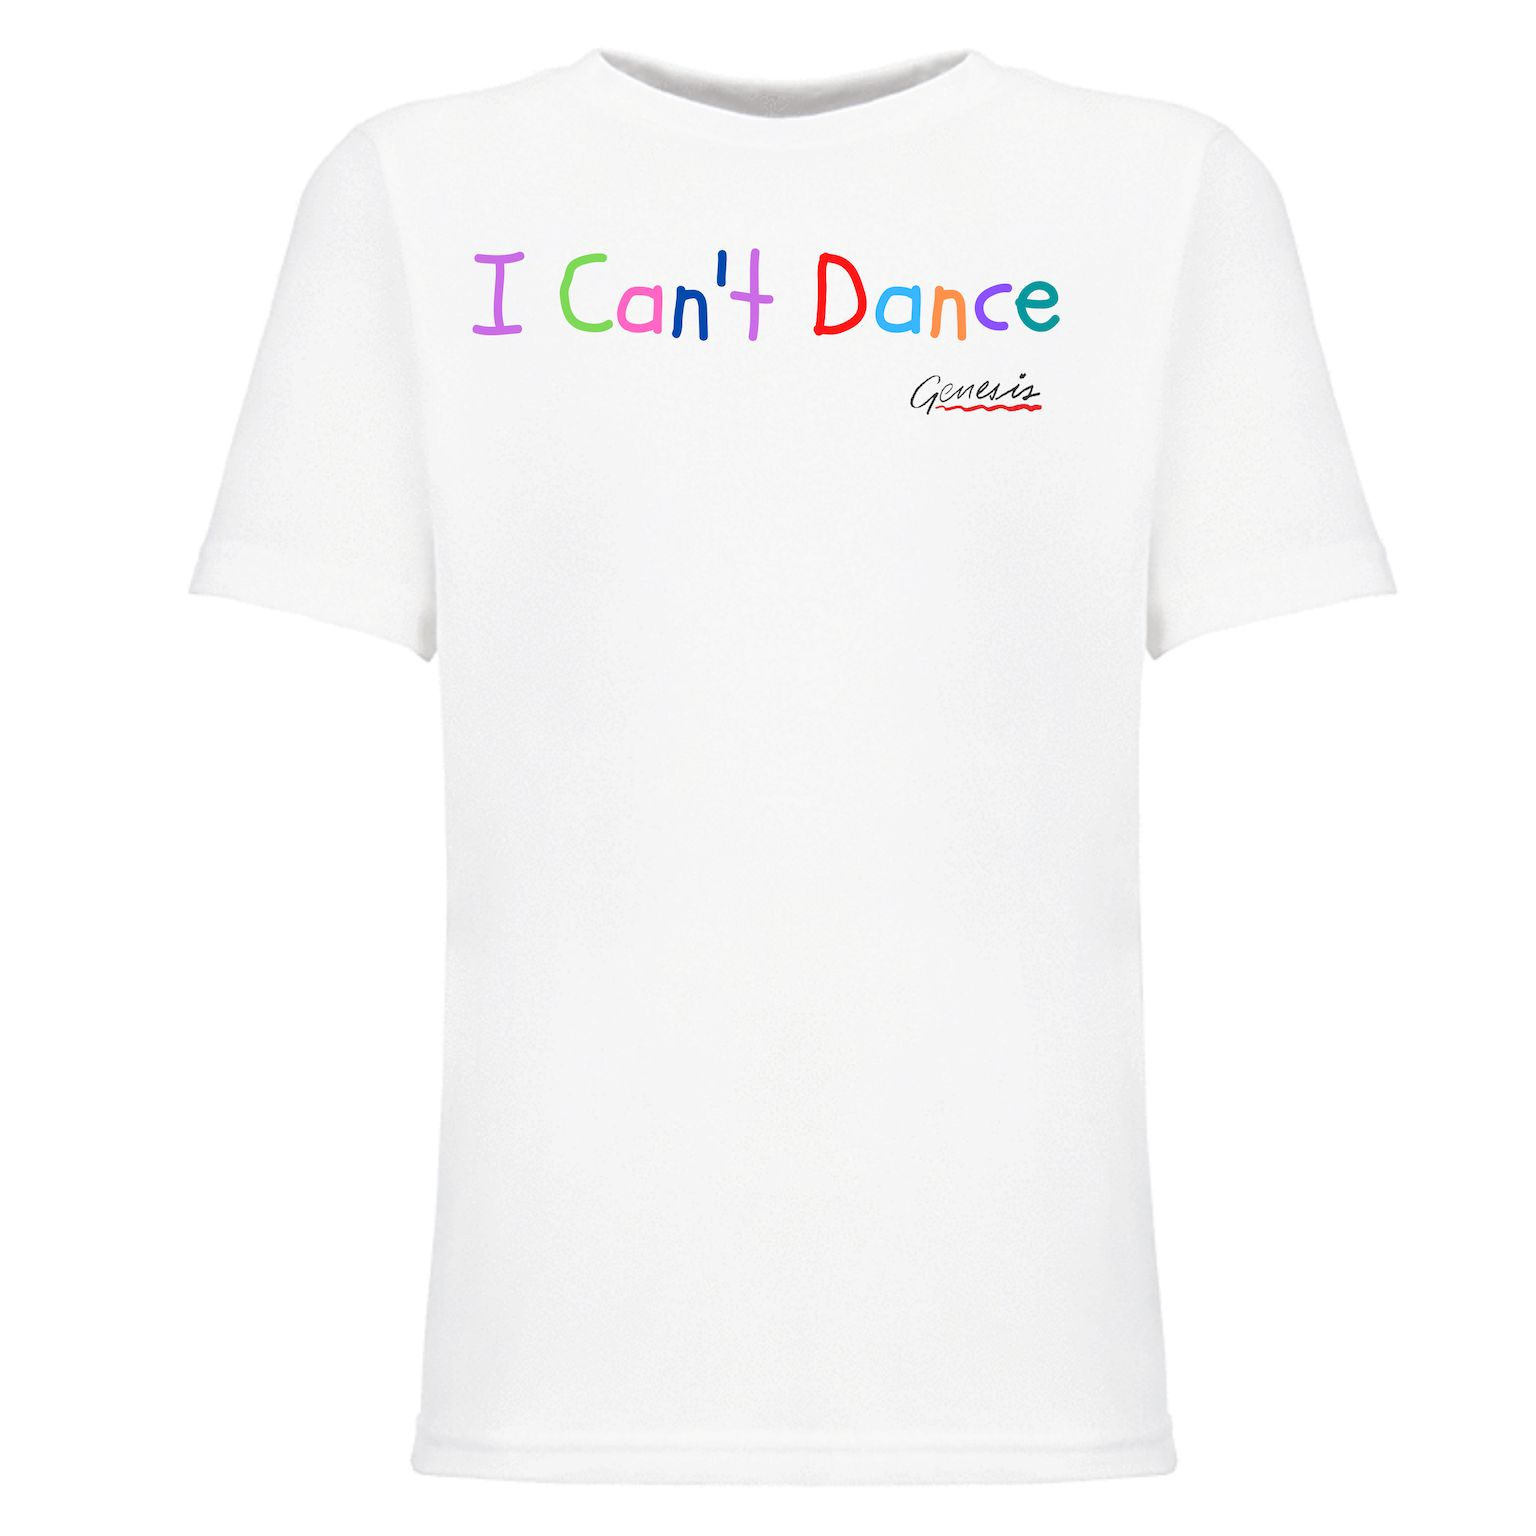 I Can't Dance Tee